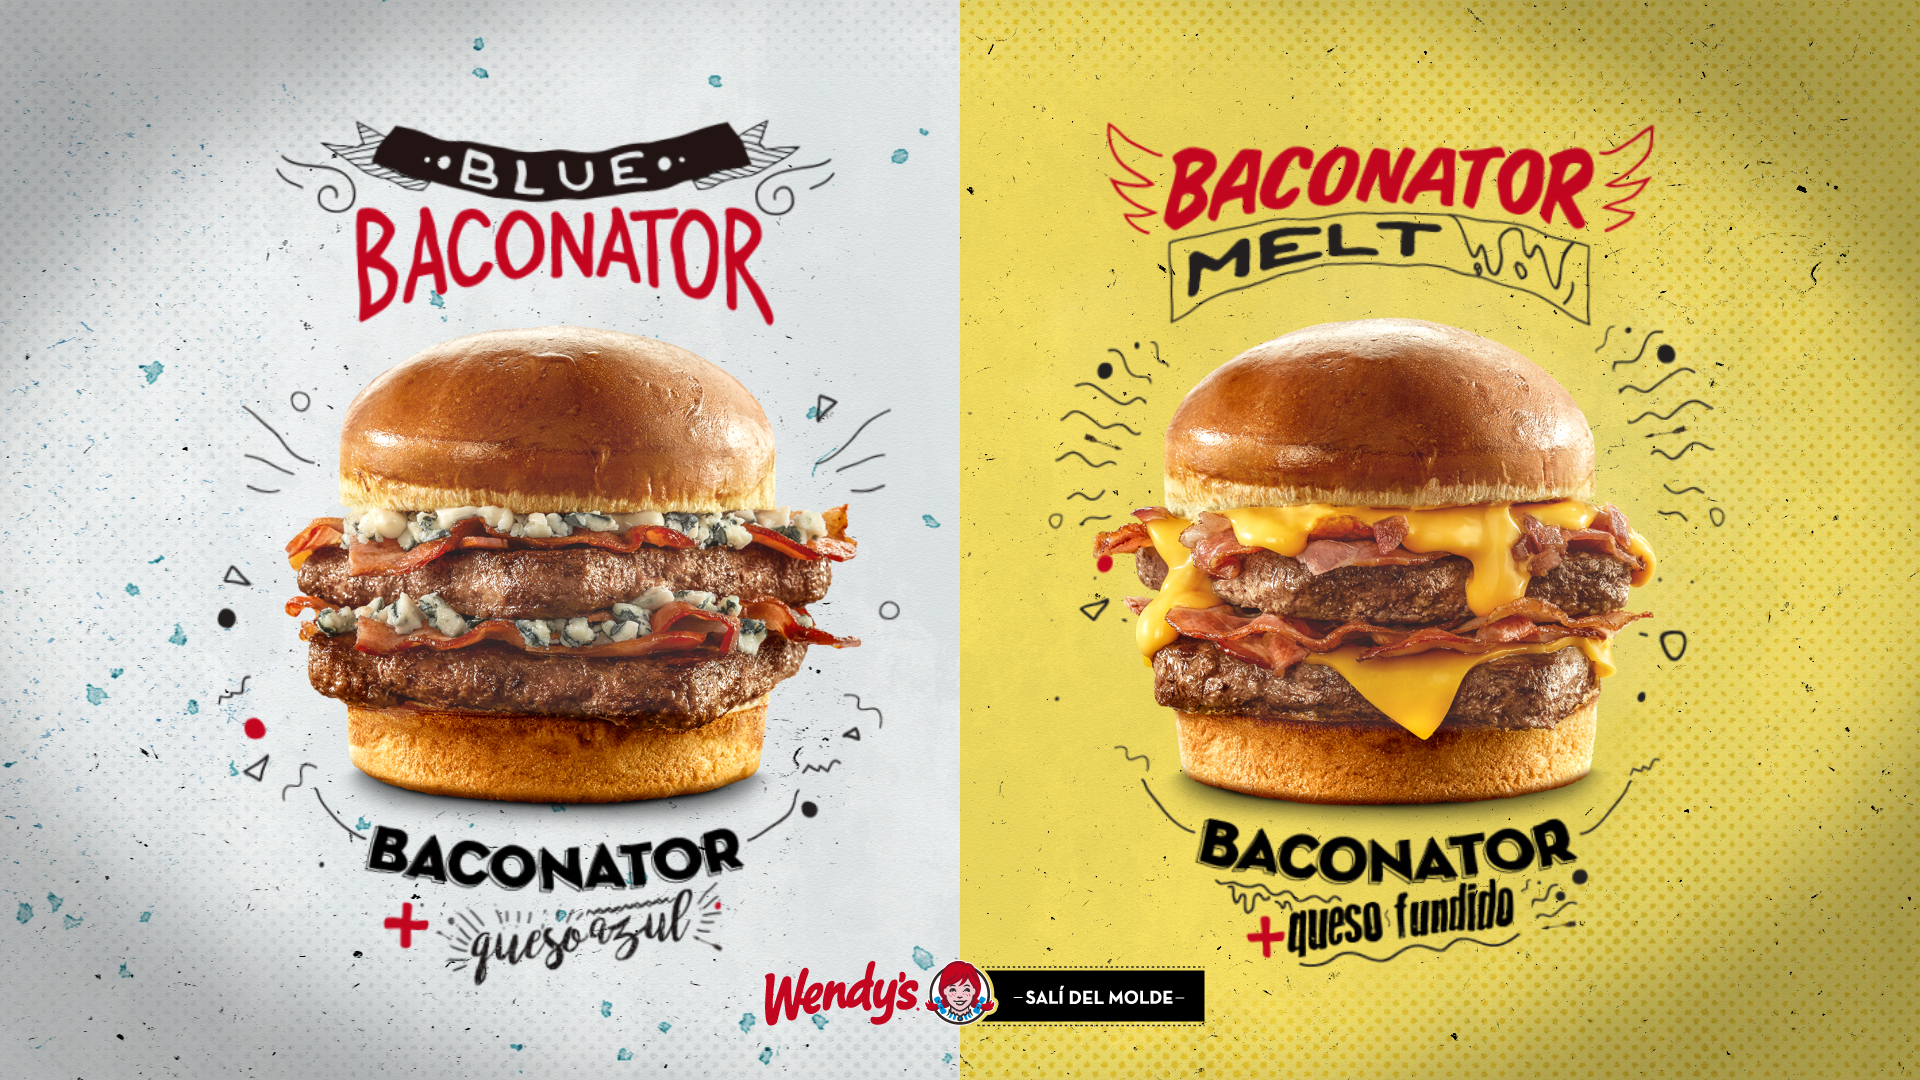 BACONATOR HD HORIZONTAL